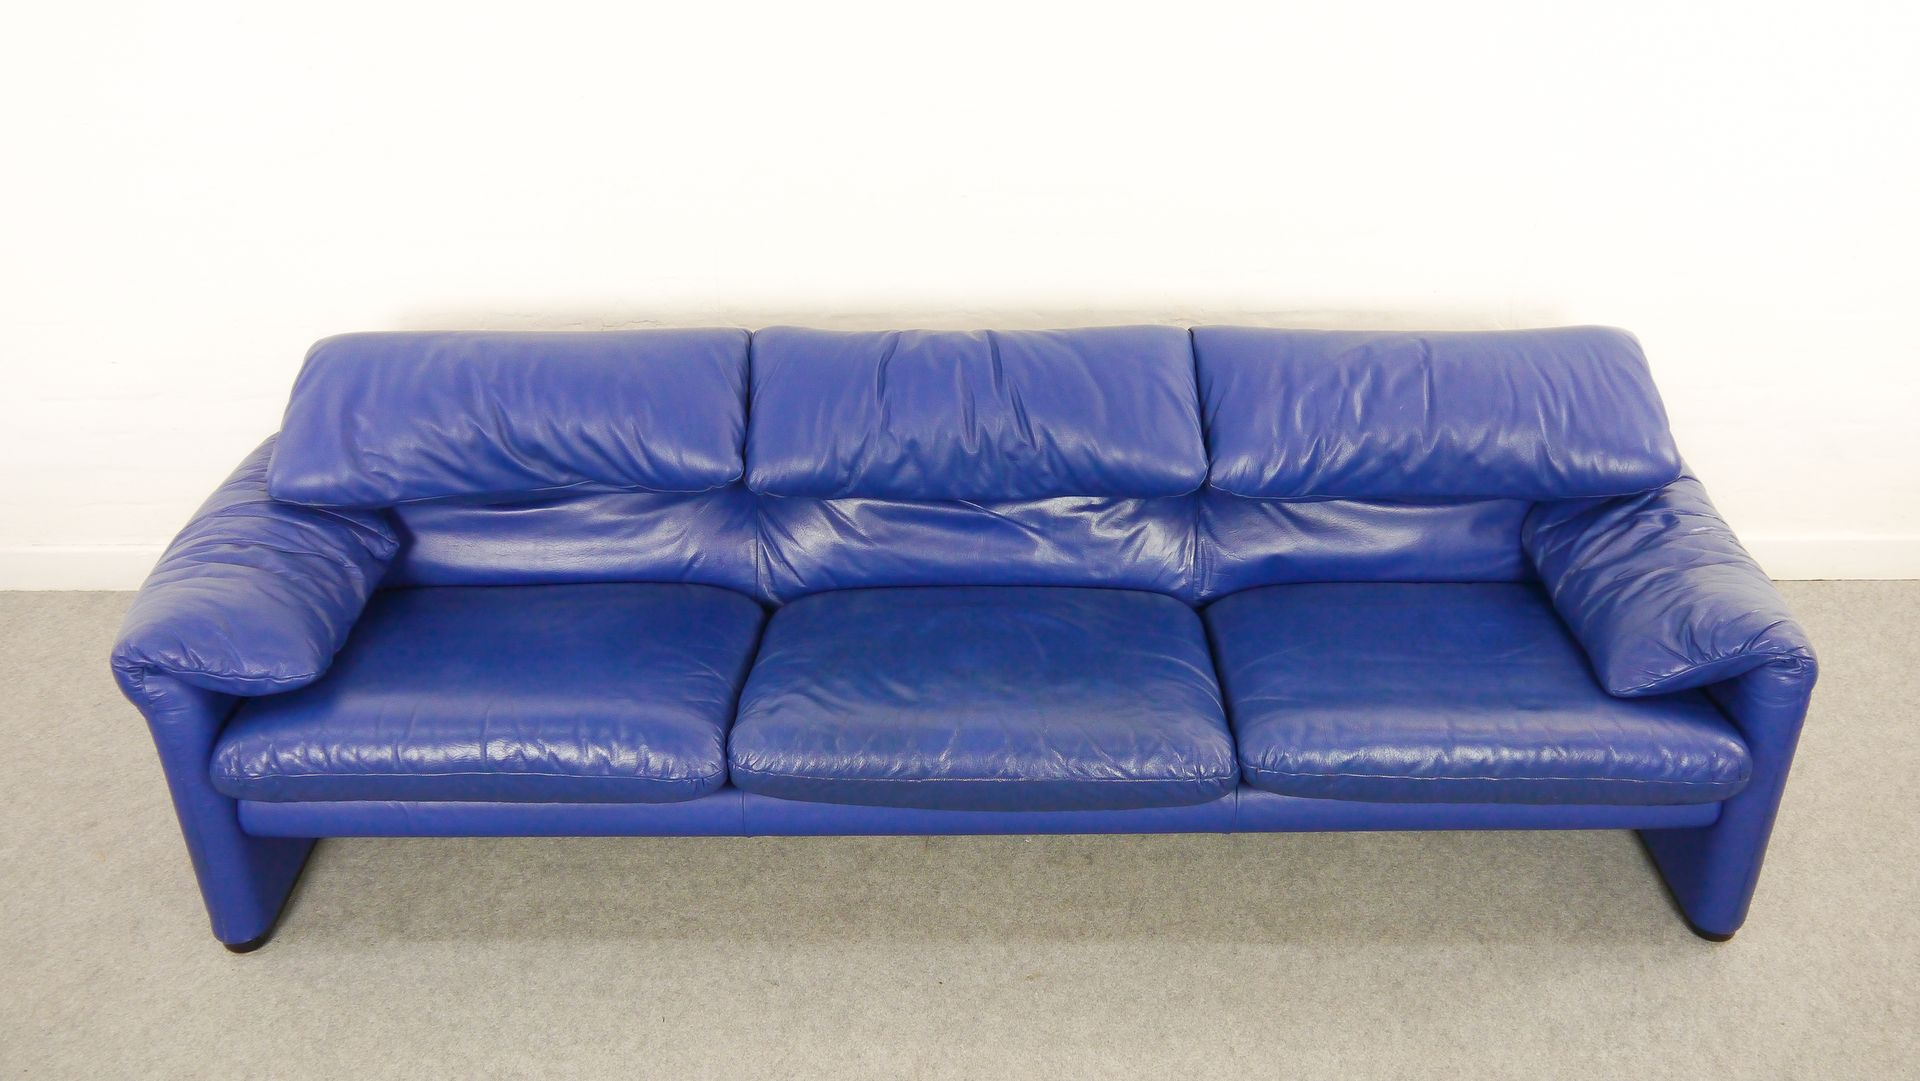 Cobalt blue leather sofa more views sofarustic sleeper for Blue leather chaise